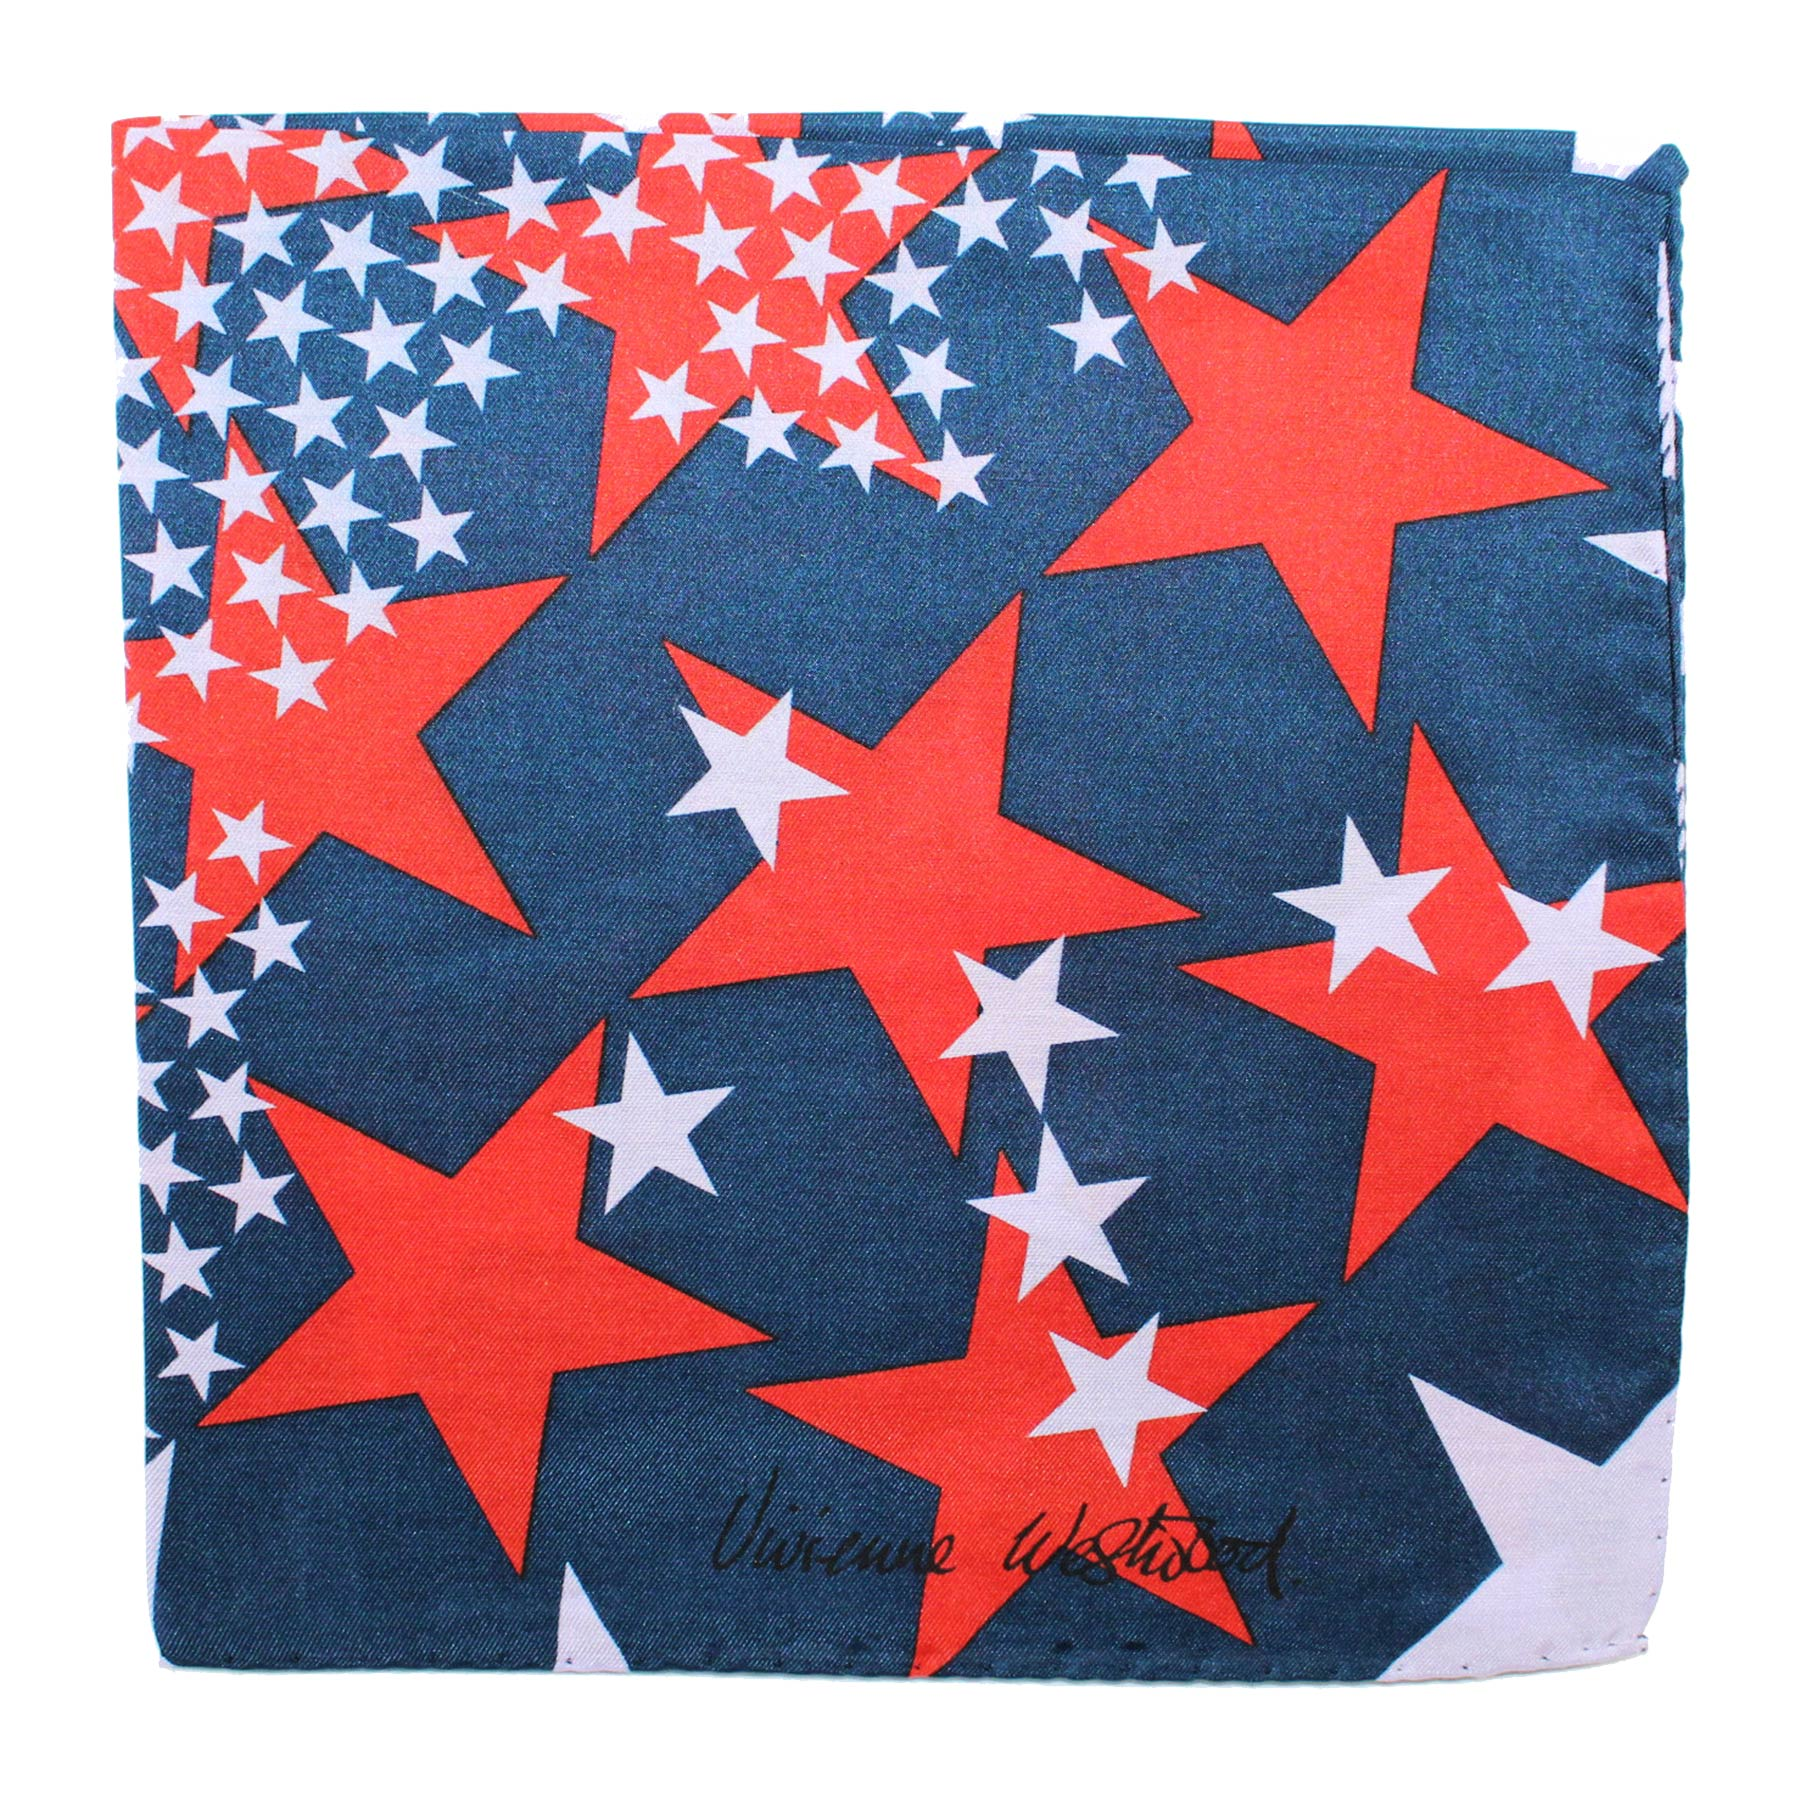 Vivienne Westwood Small Scarf Dark Blue Red Stars